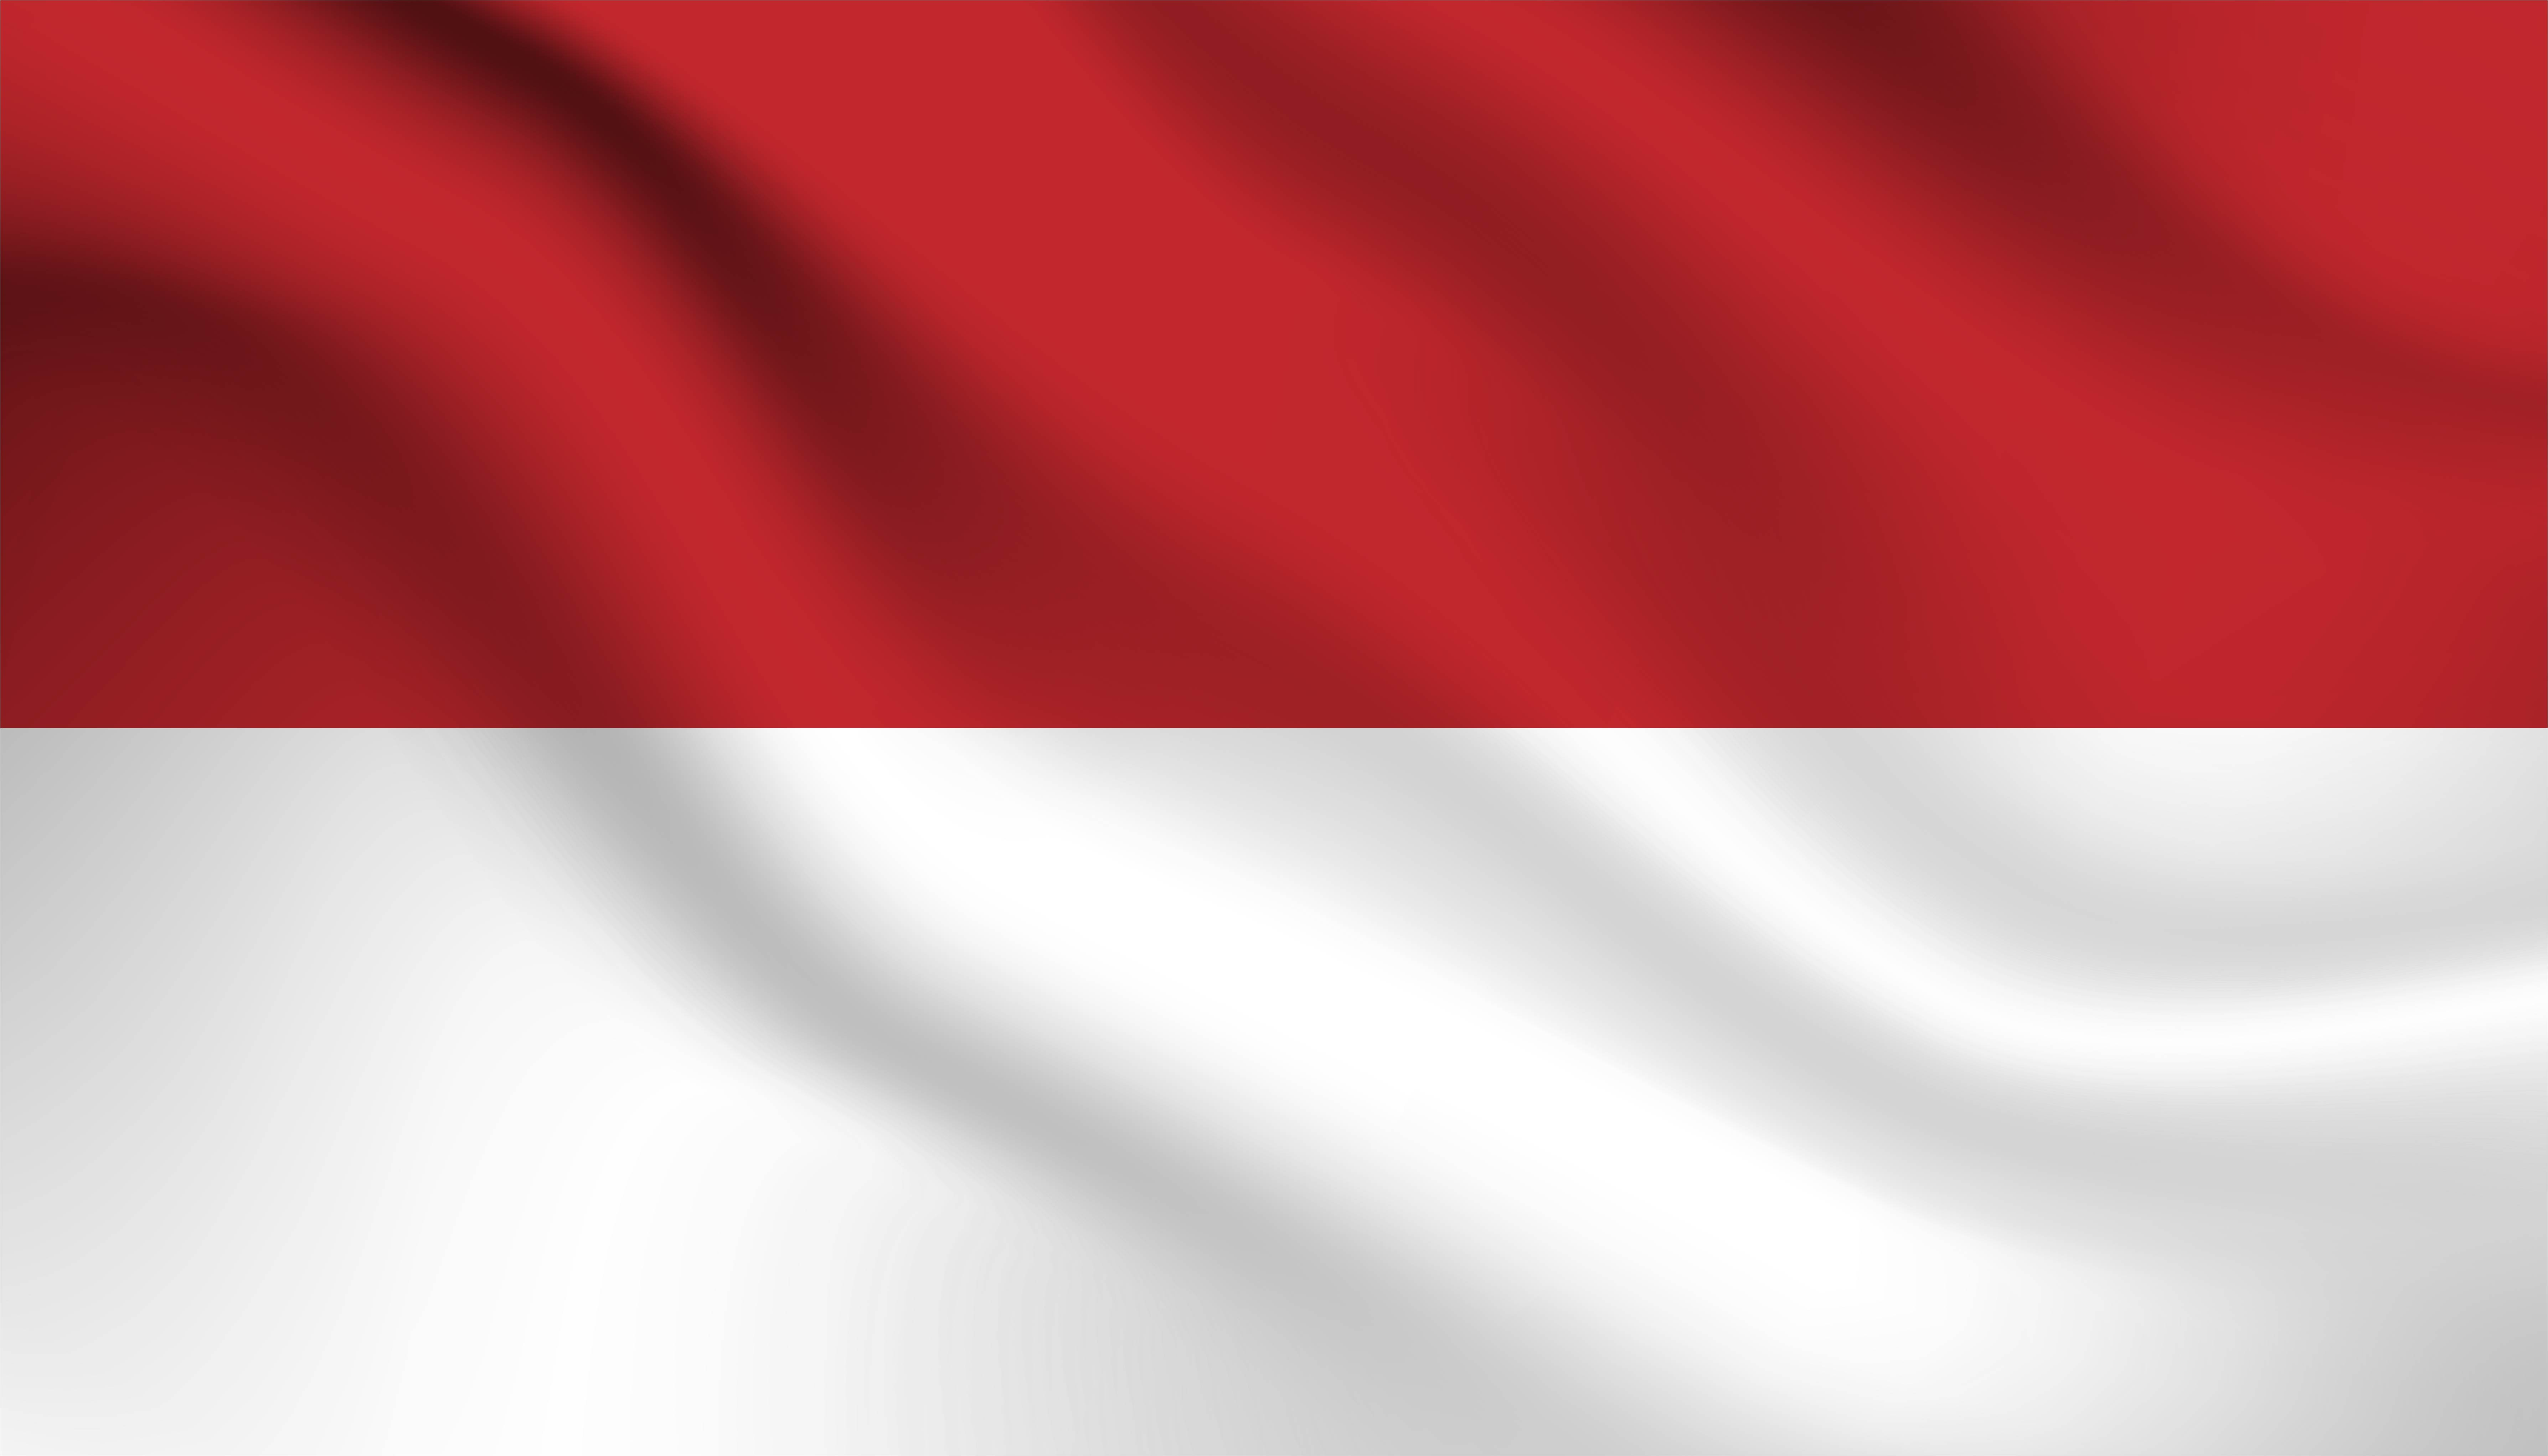 Flag Of Indonesia Background 1176907 Vector Art At Vecteezy